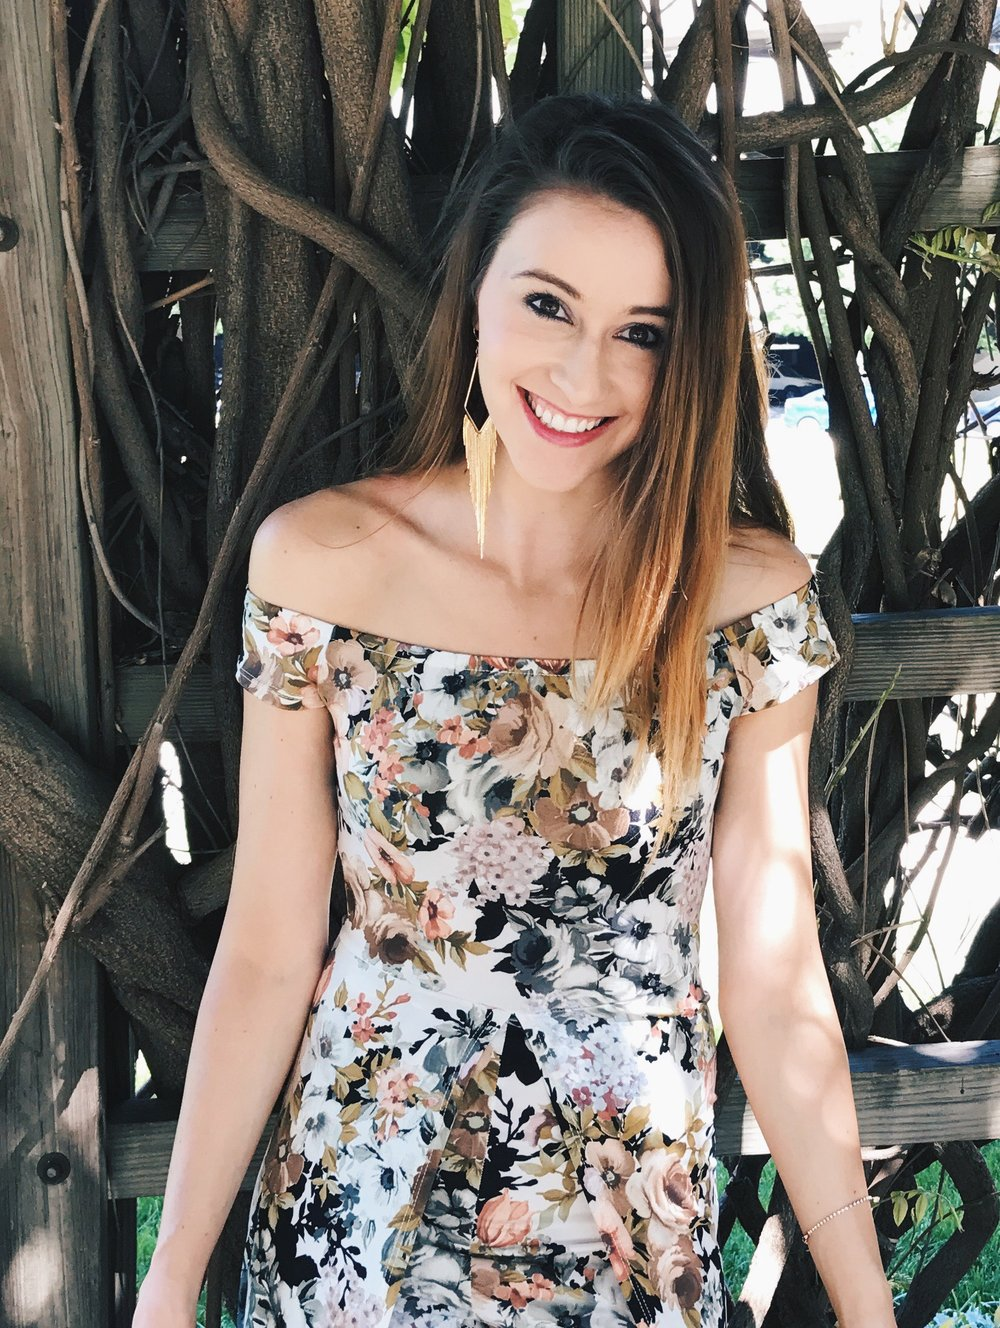 Your Freund Emily - Fashion, floral romper